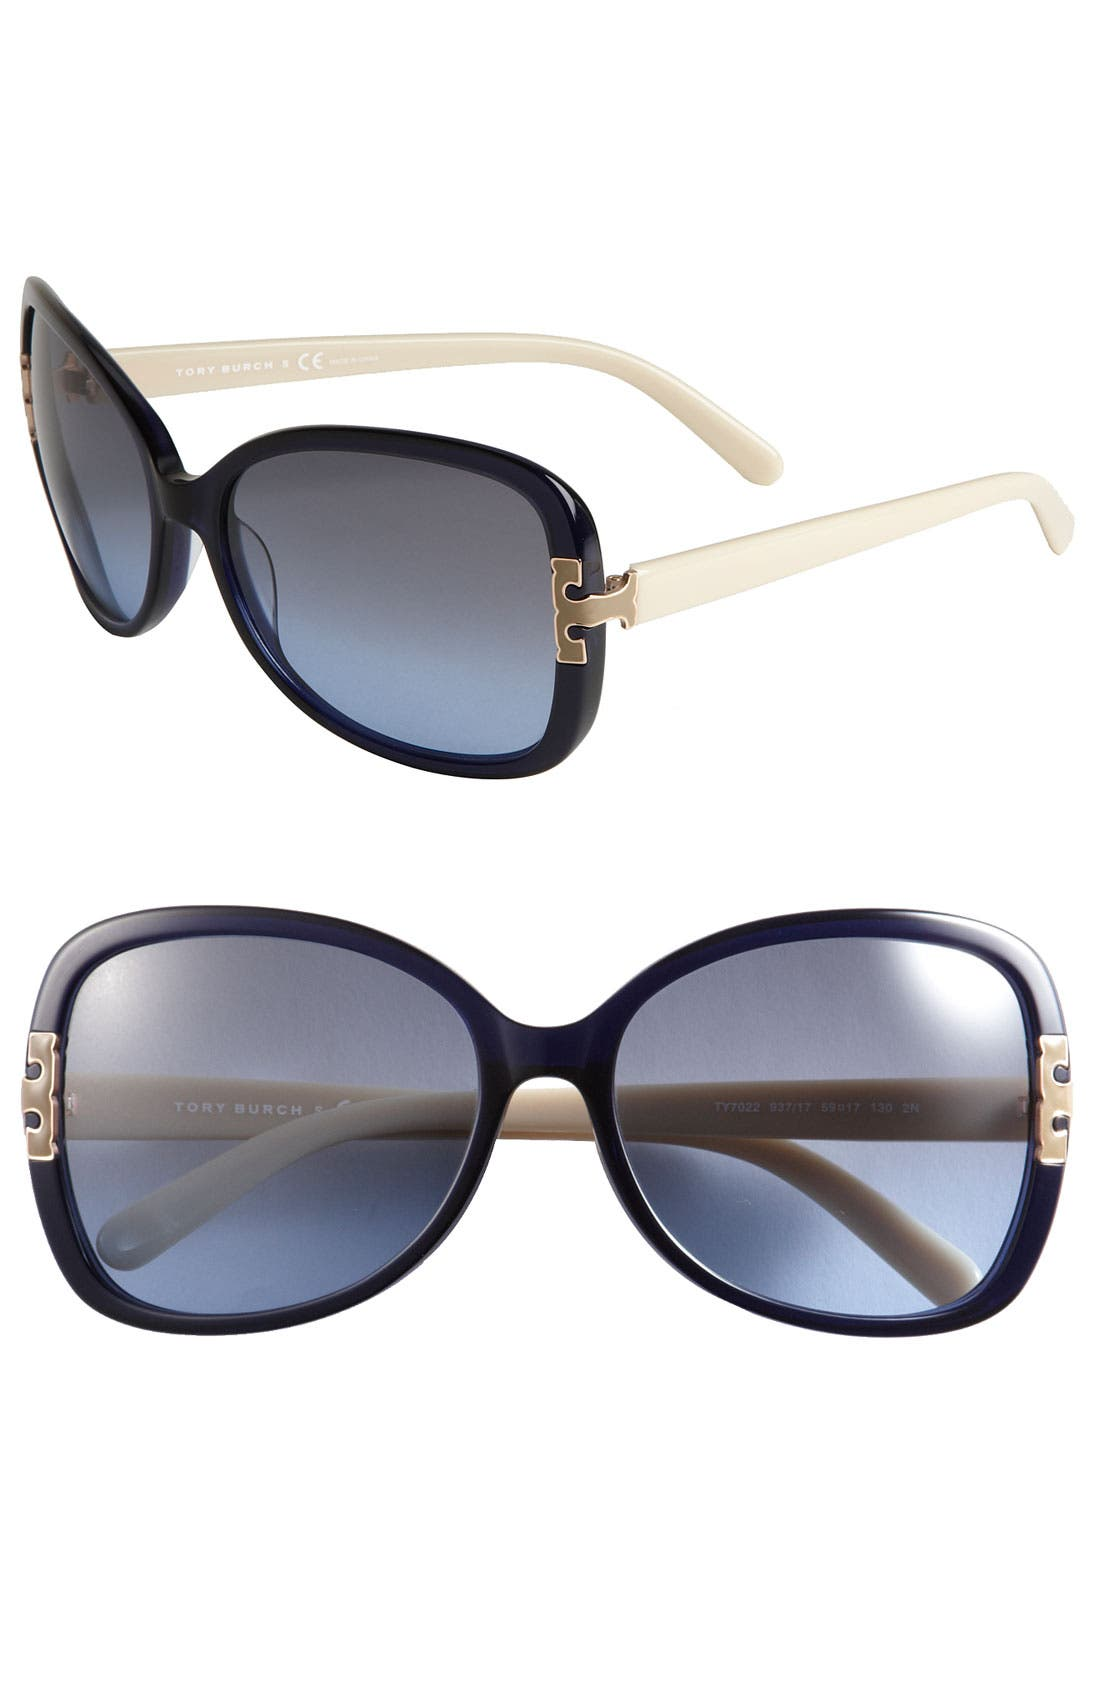 Main Image - Tory Burch 59mm Oversized Sunglasses